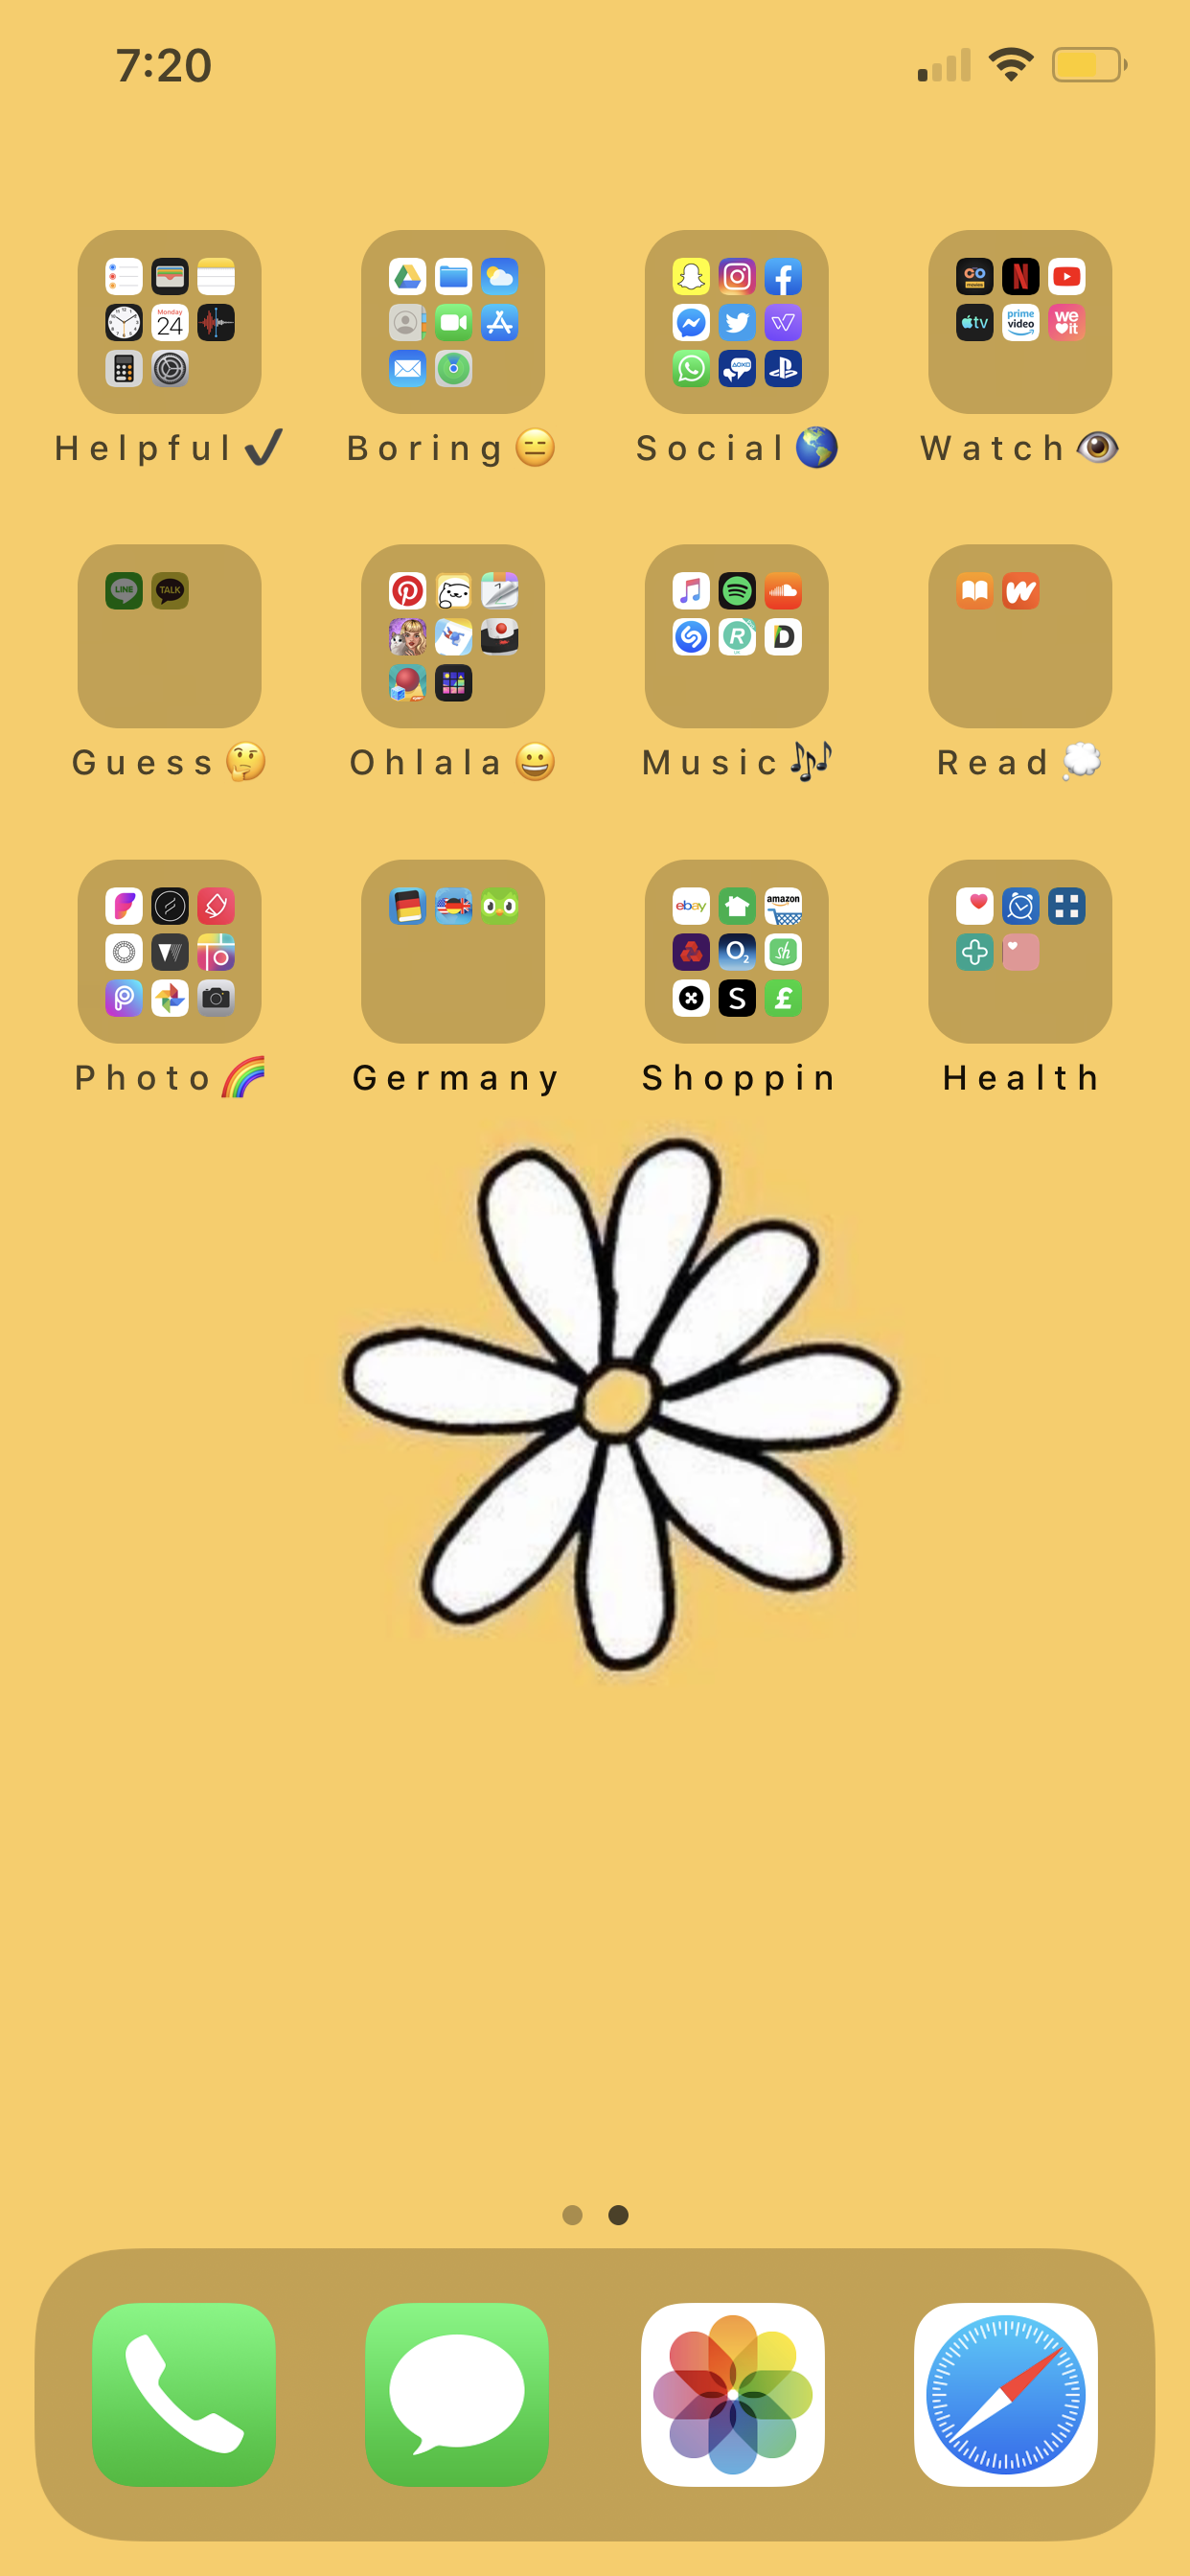 Pin By Mimif On Phone Cases Iphone Organization Iphone App Layout Homescreen Iphone